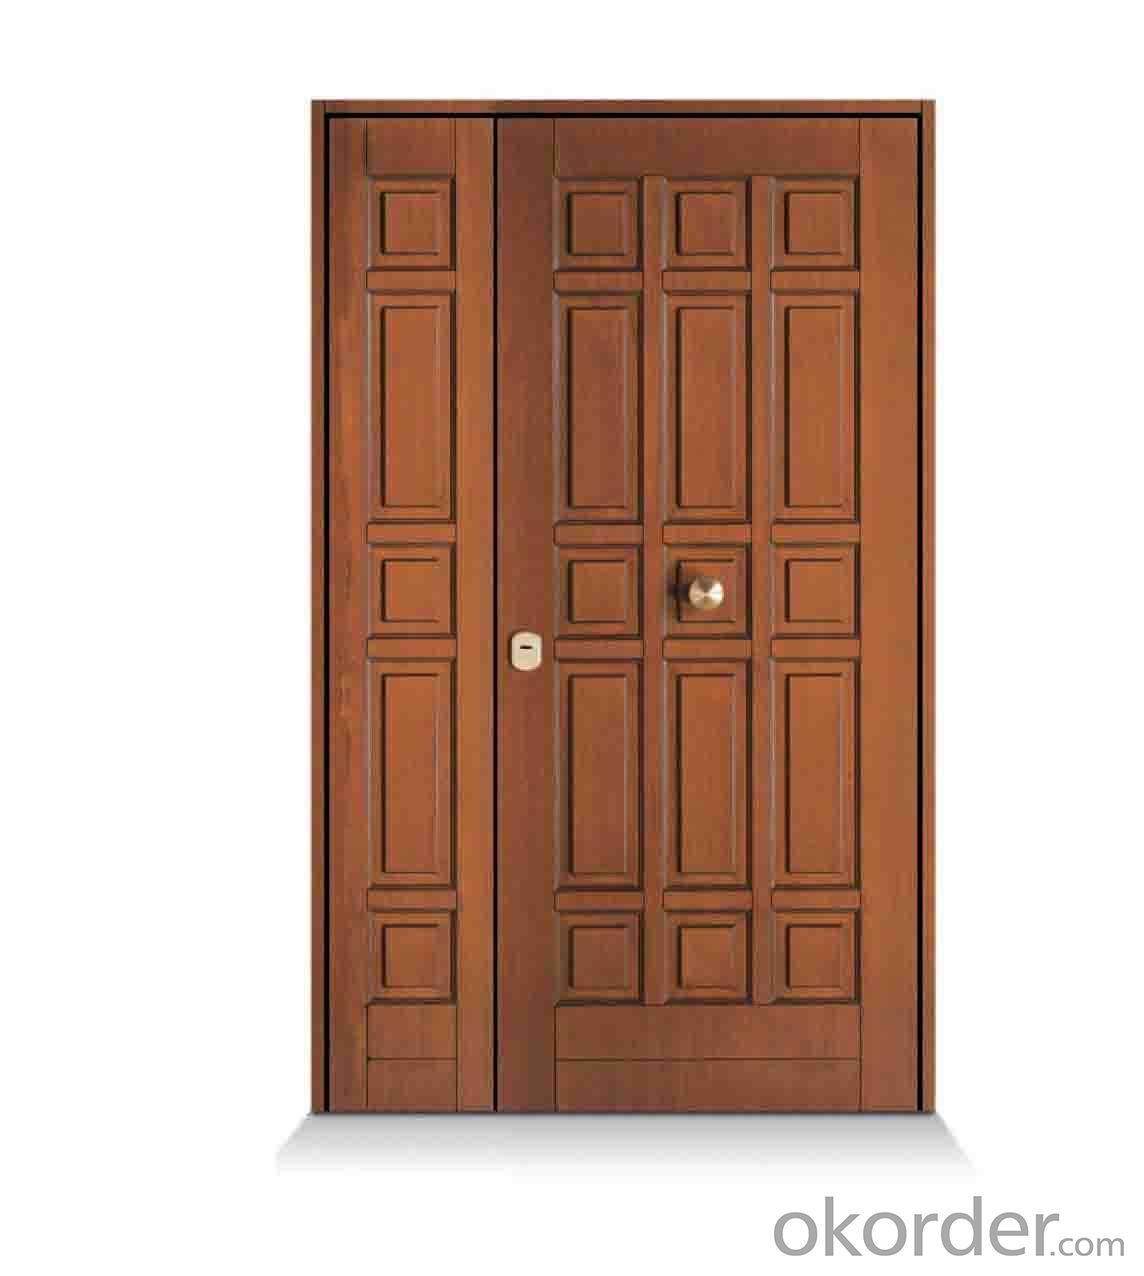 PVC MDF laminated Wooden Door VISION PANEL